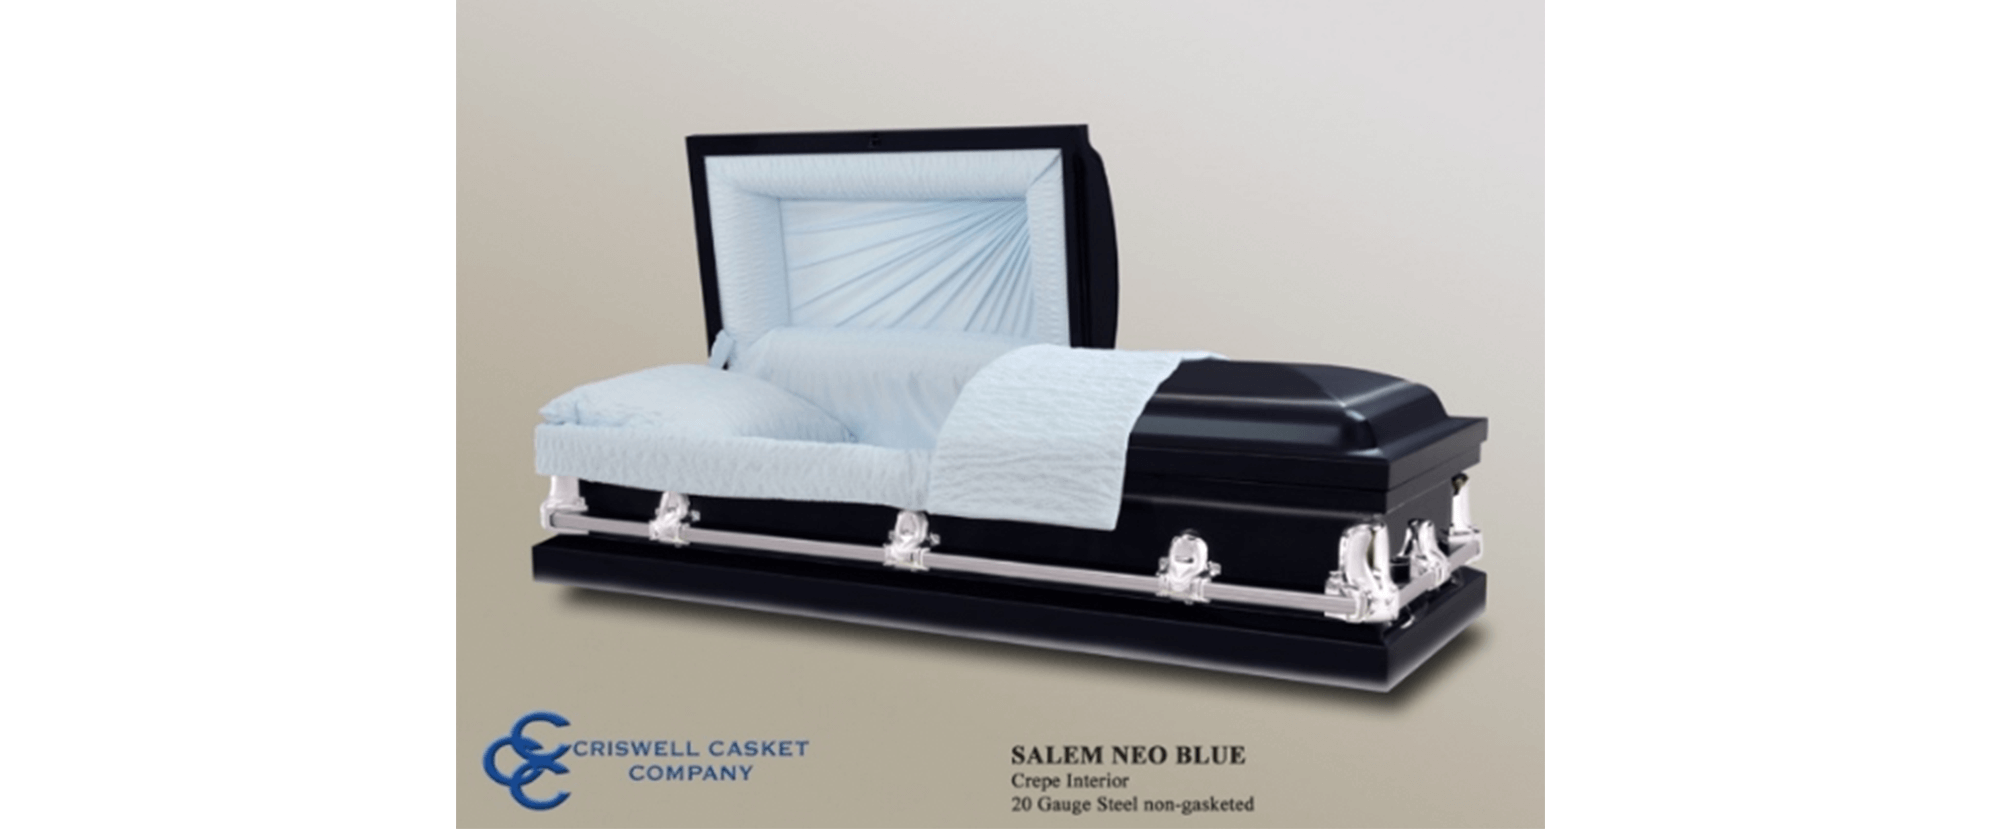 Burial Plans | Shafer-Perfetti & Assalley Funeral Homes